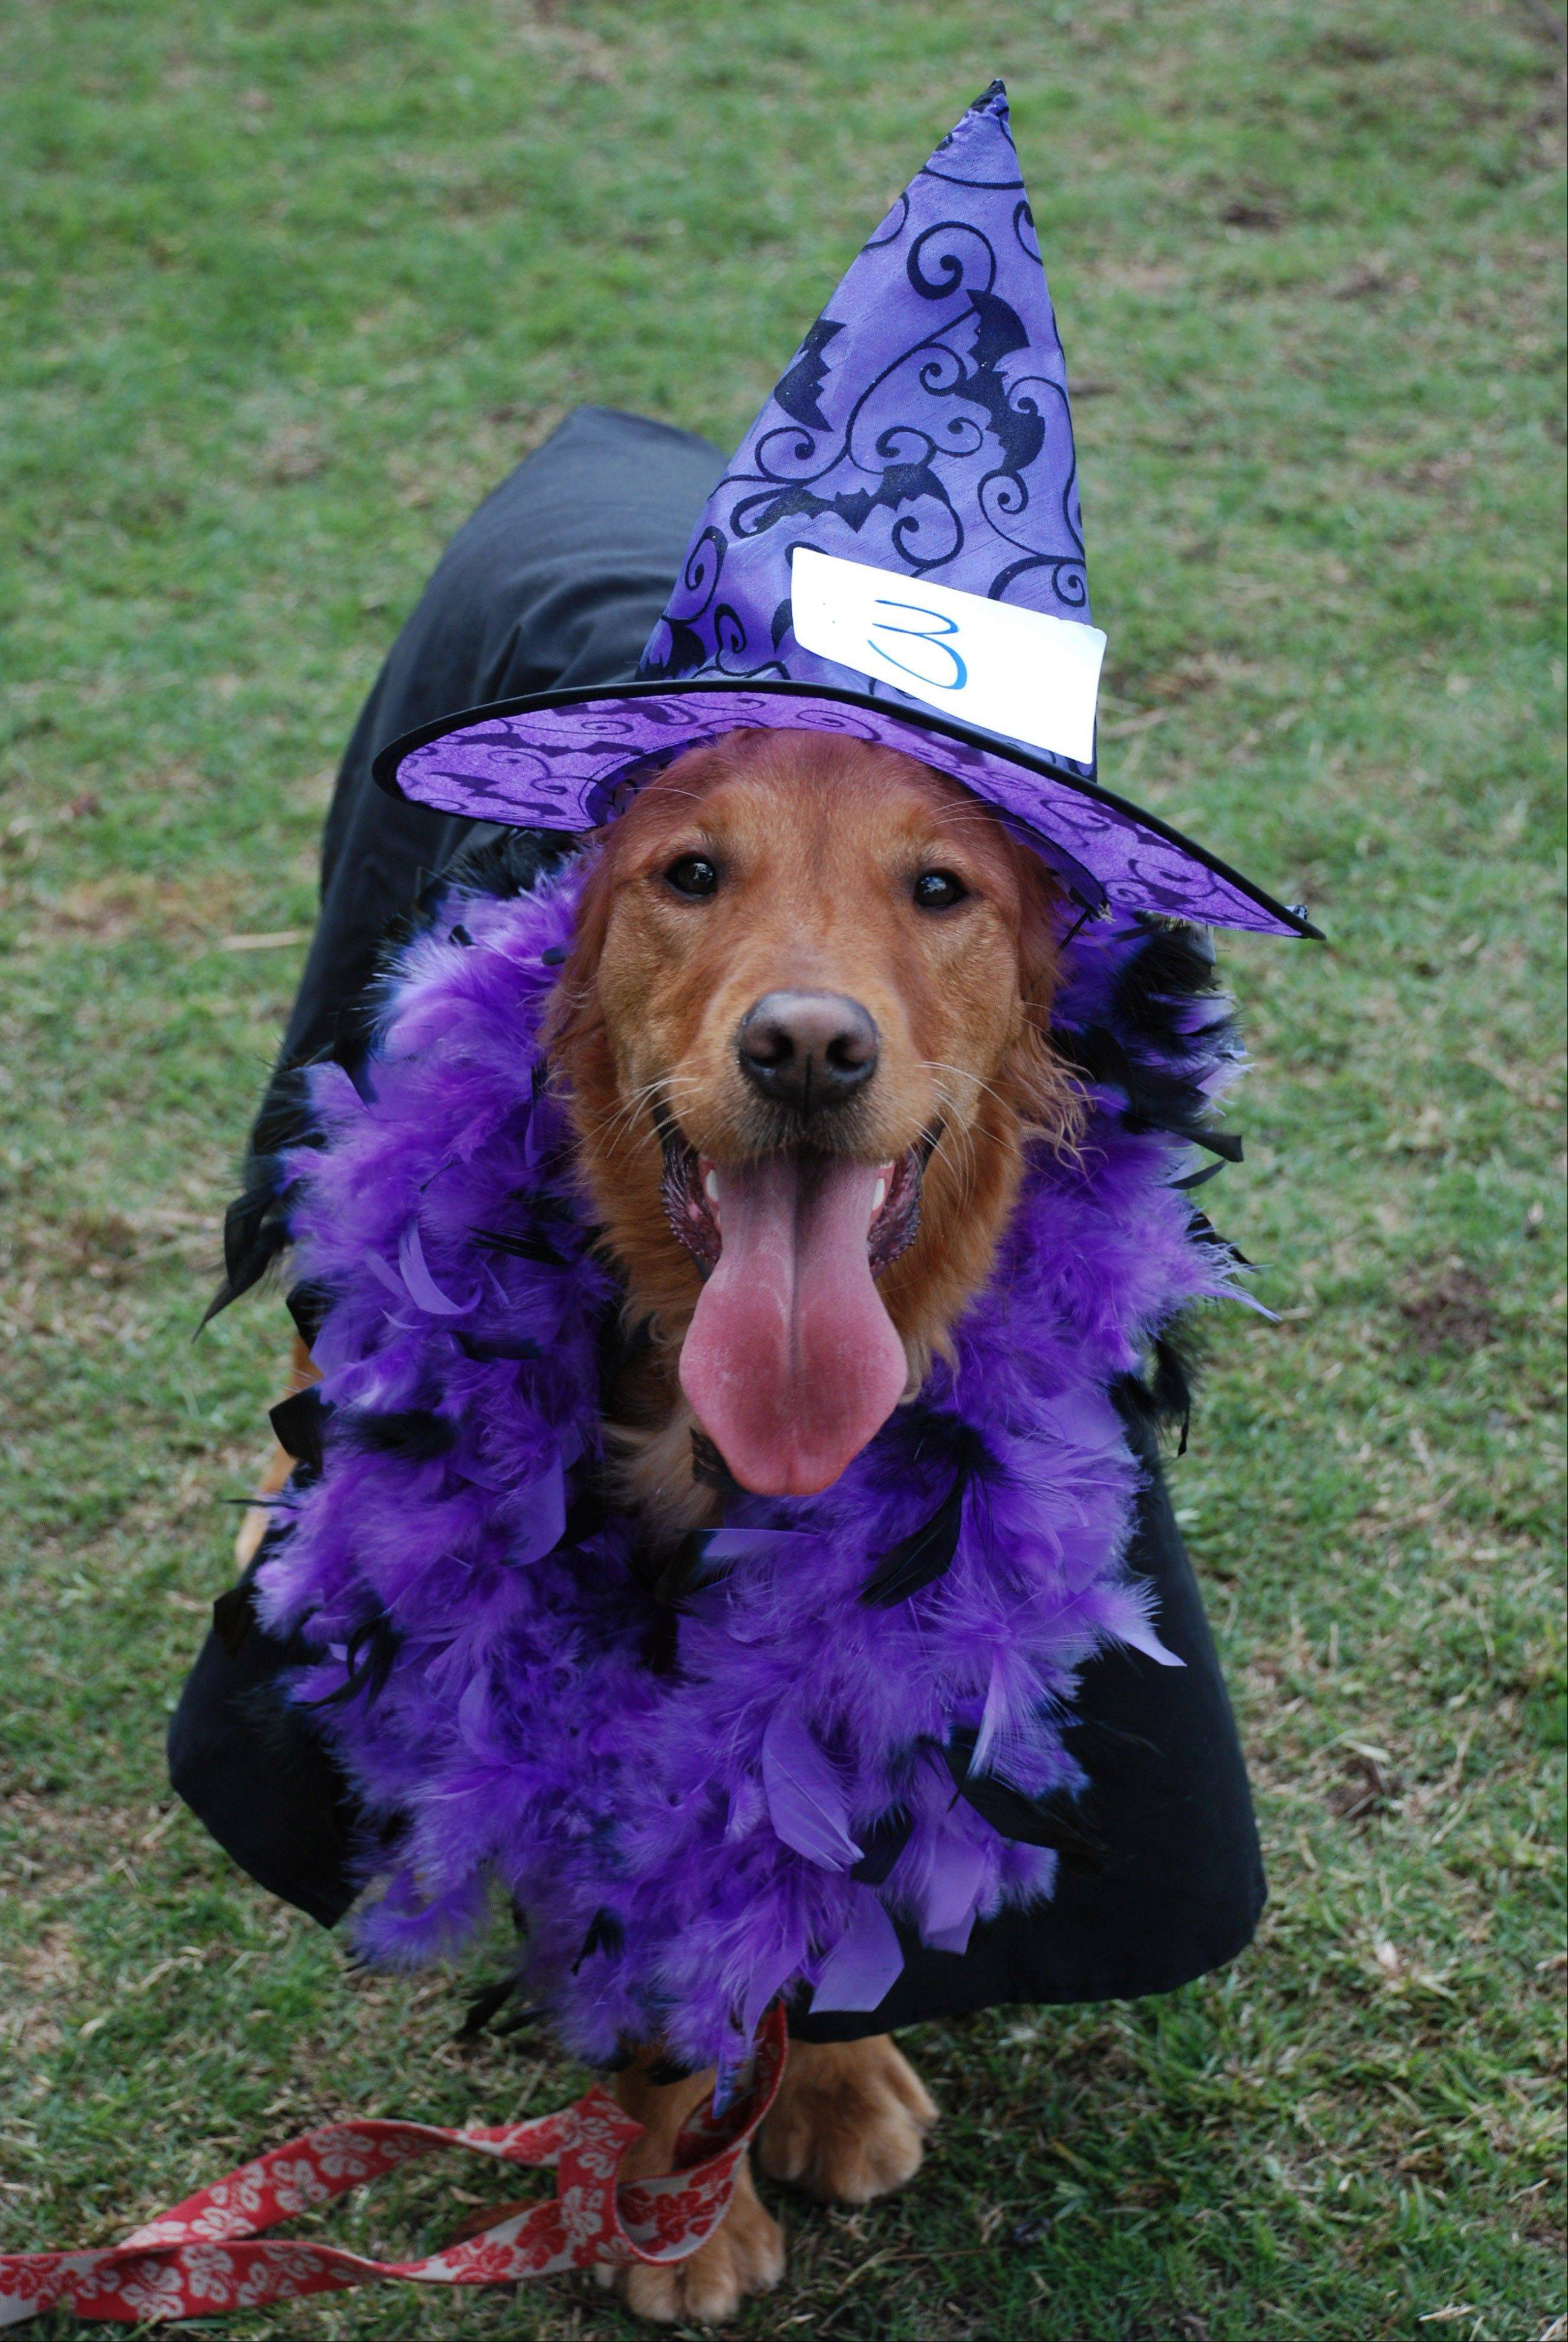 This Oct. 31, 2010 image provided by Sue Subkow shows Andra Lew�s golden retriever, Kalani, dressed as a witch at the San Diego Golden Retriever Meetup Group�s Halloween Pooch Party in San Diego, Calif. As Halloween has grown in popularity across the country, real party animals have been a big part of it, experts say.